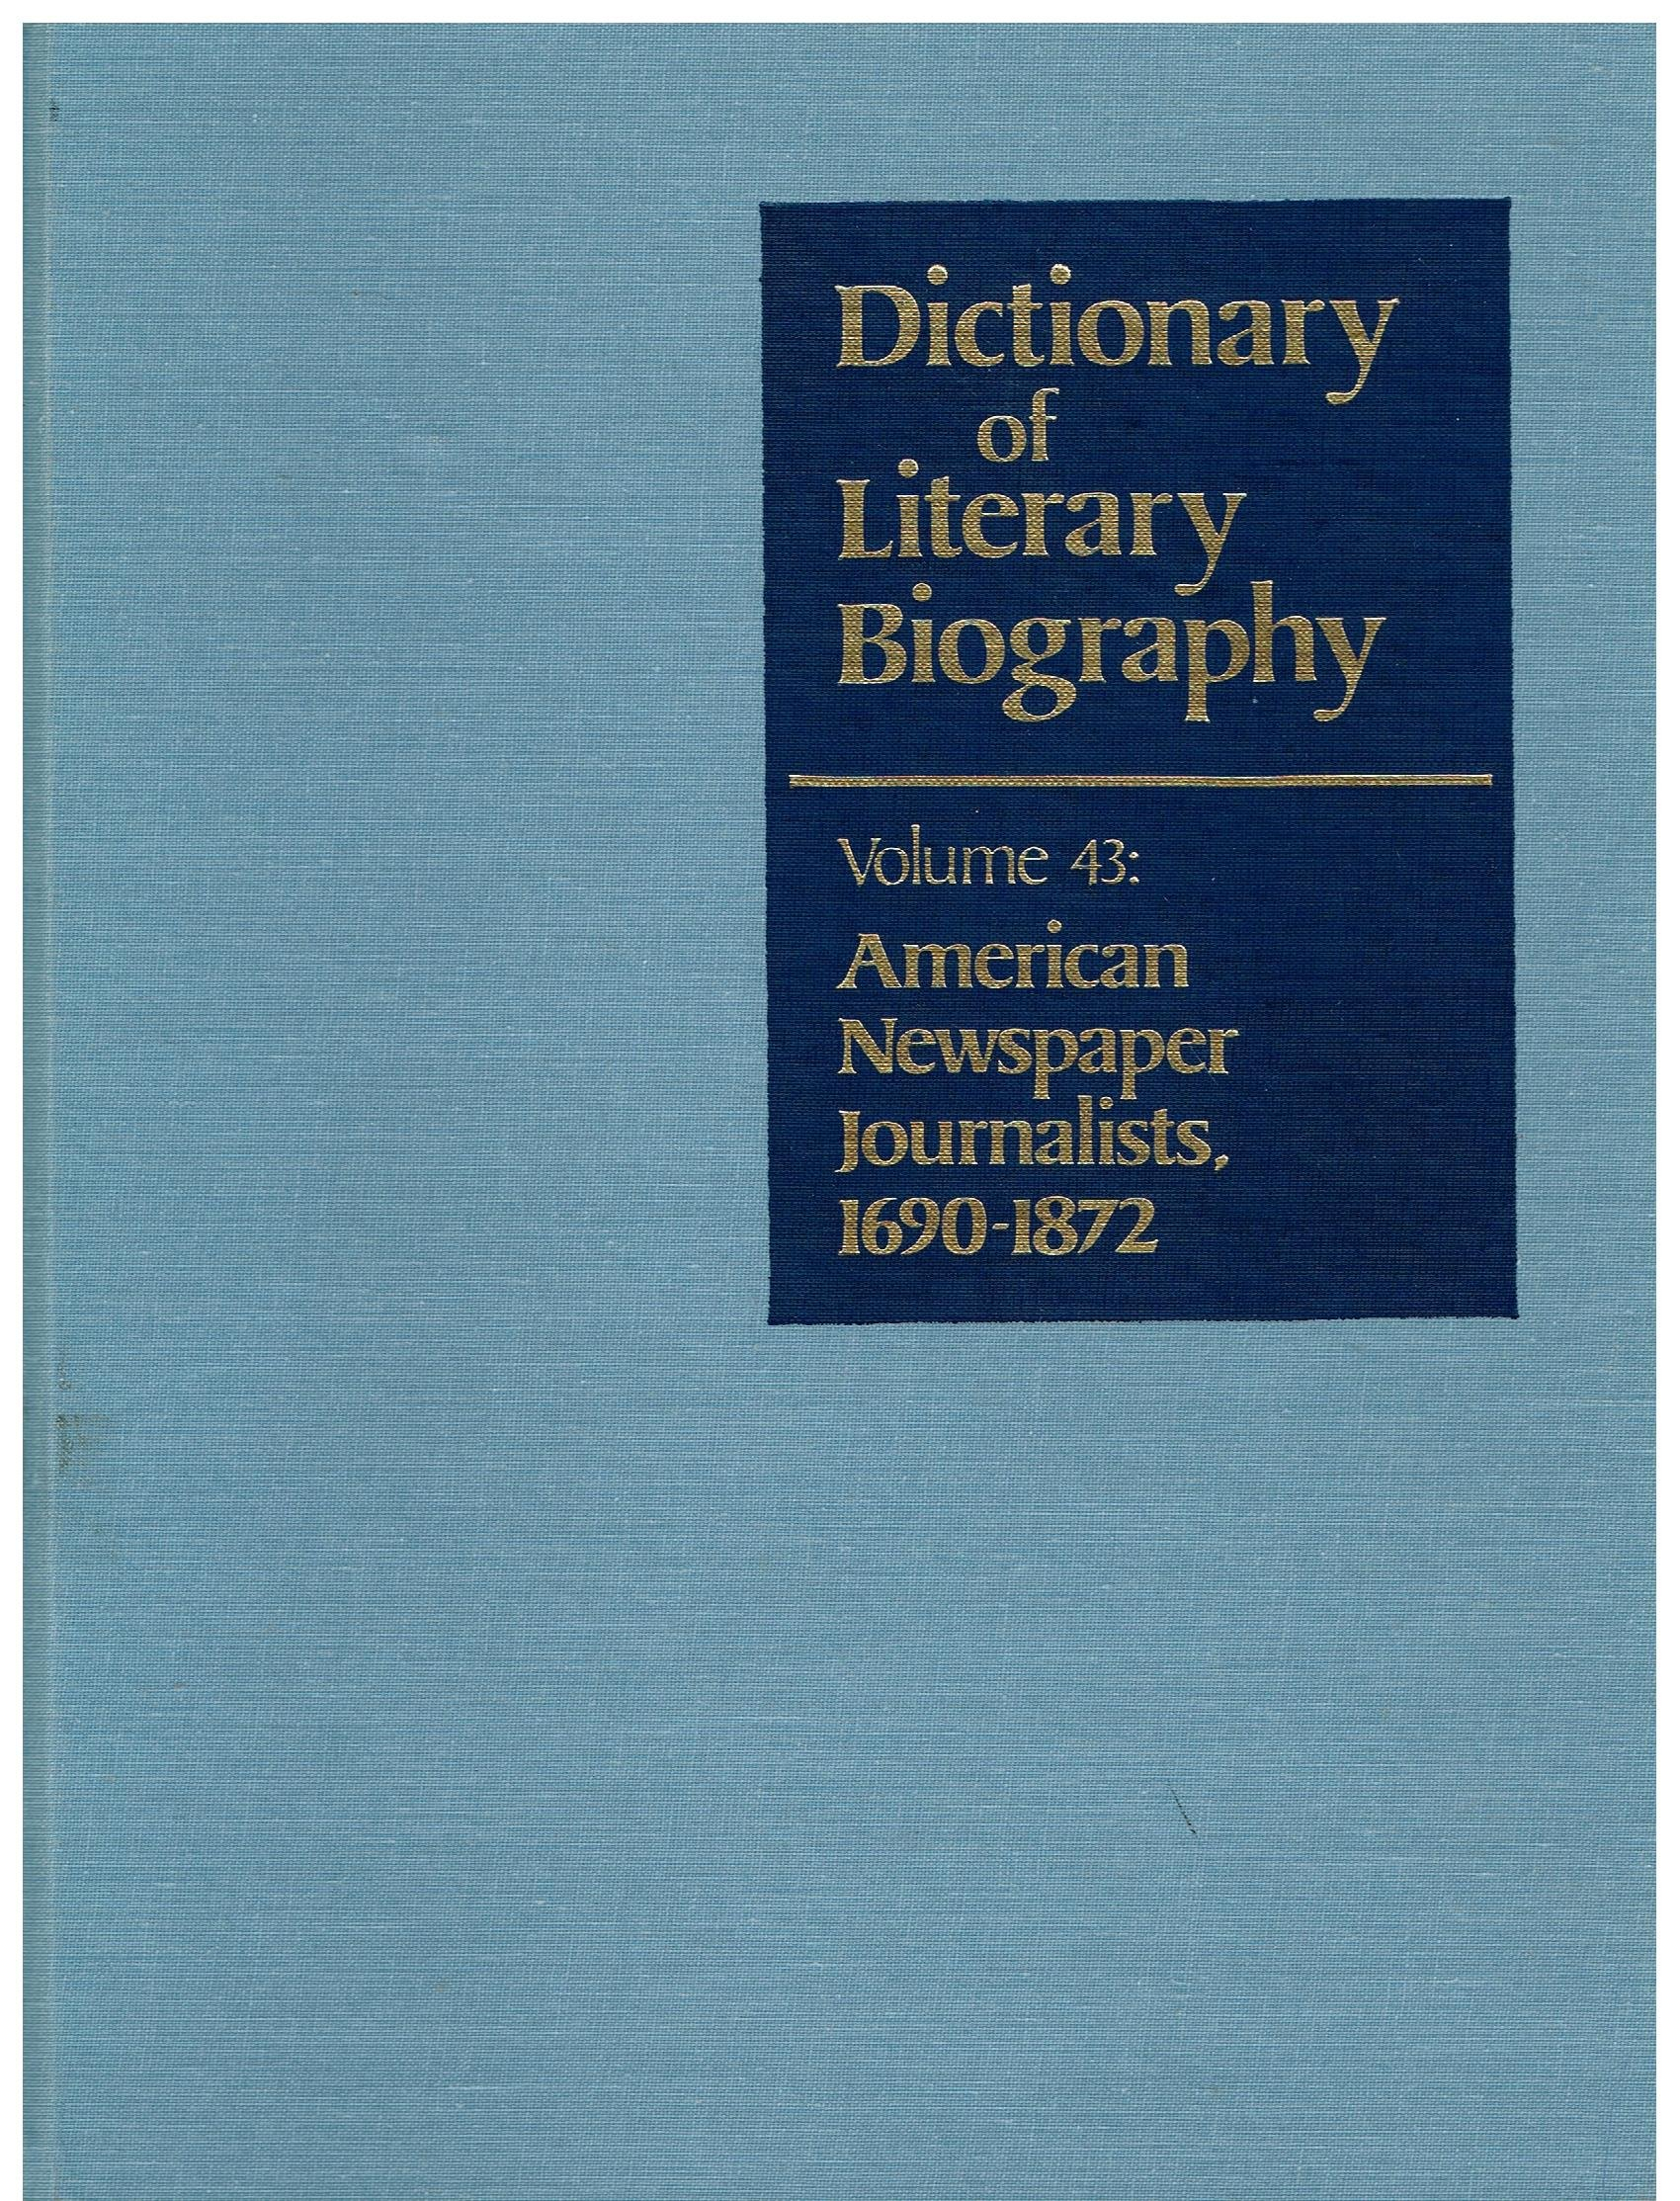 Dictionary of Literary Biography: American Newspaper Journalists 1690-1872 by Gale